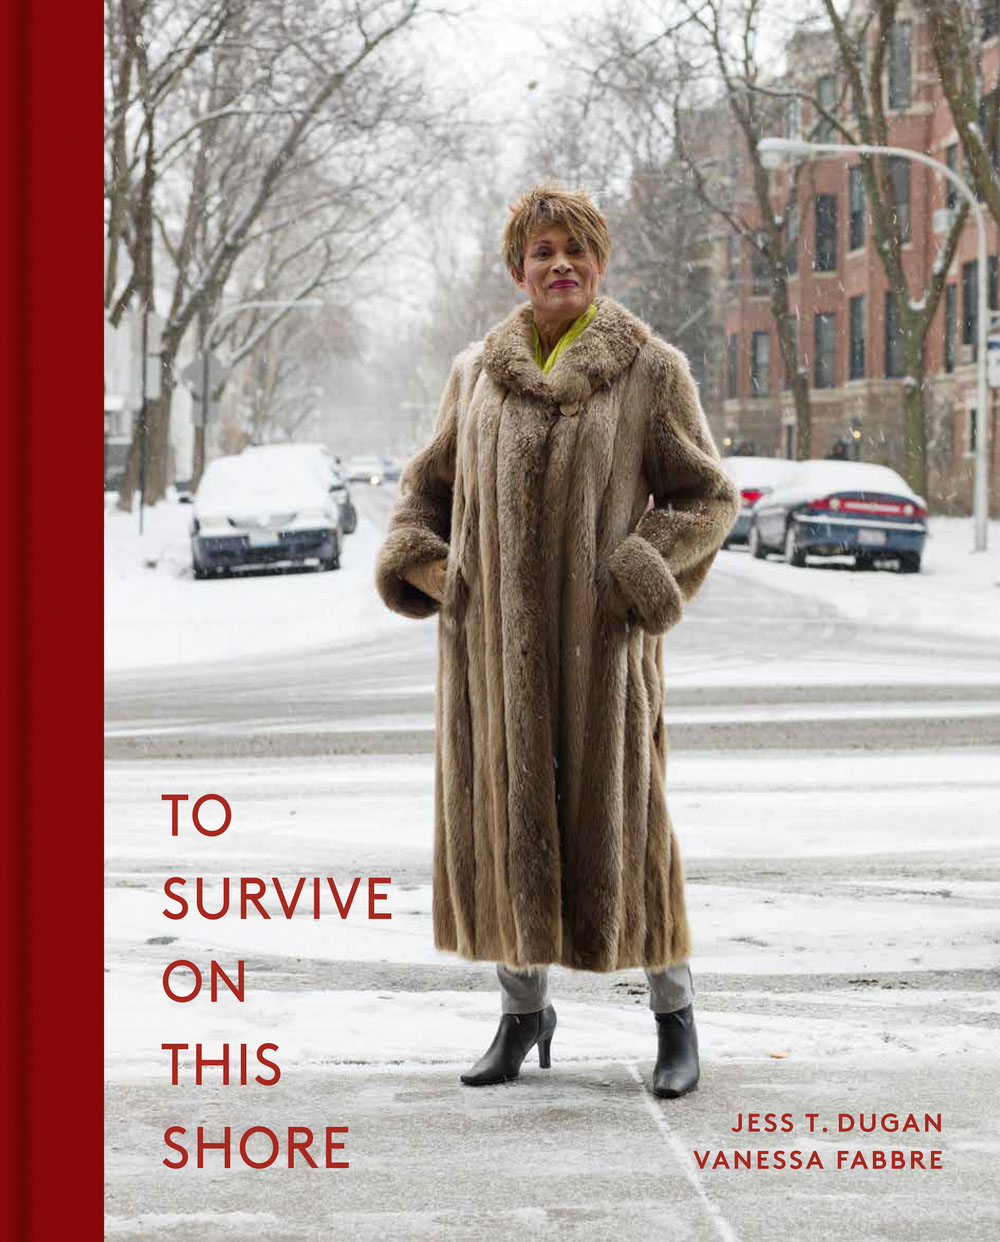 To Survive on This Shore: Photographs and Interviews with Transgender and Gender Nonconforming Older Adults  by Jess T. Dugan and Vanessa Fabbre